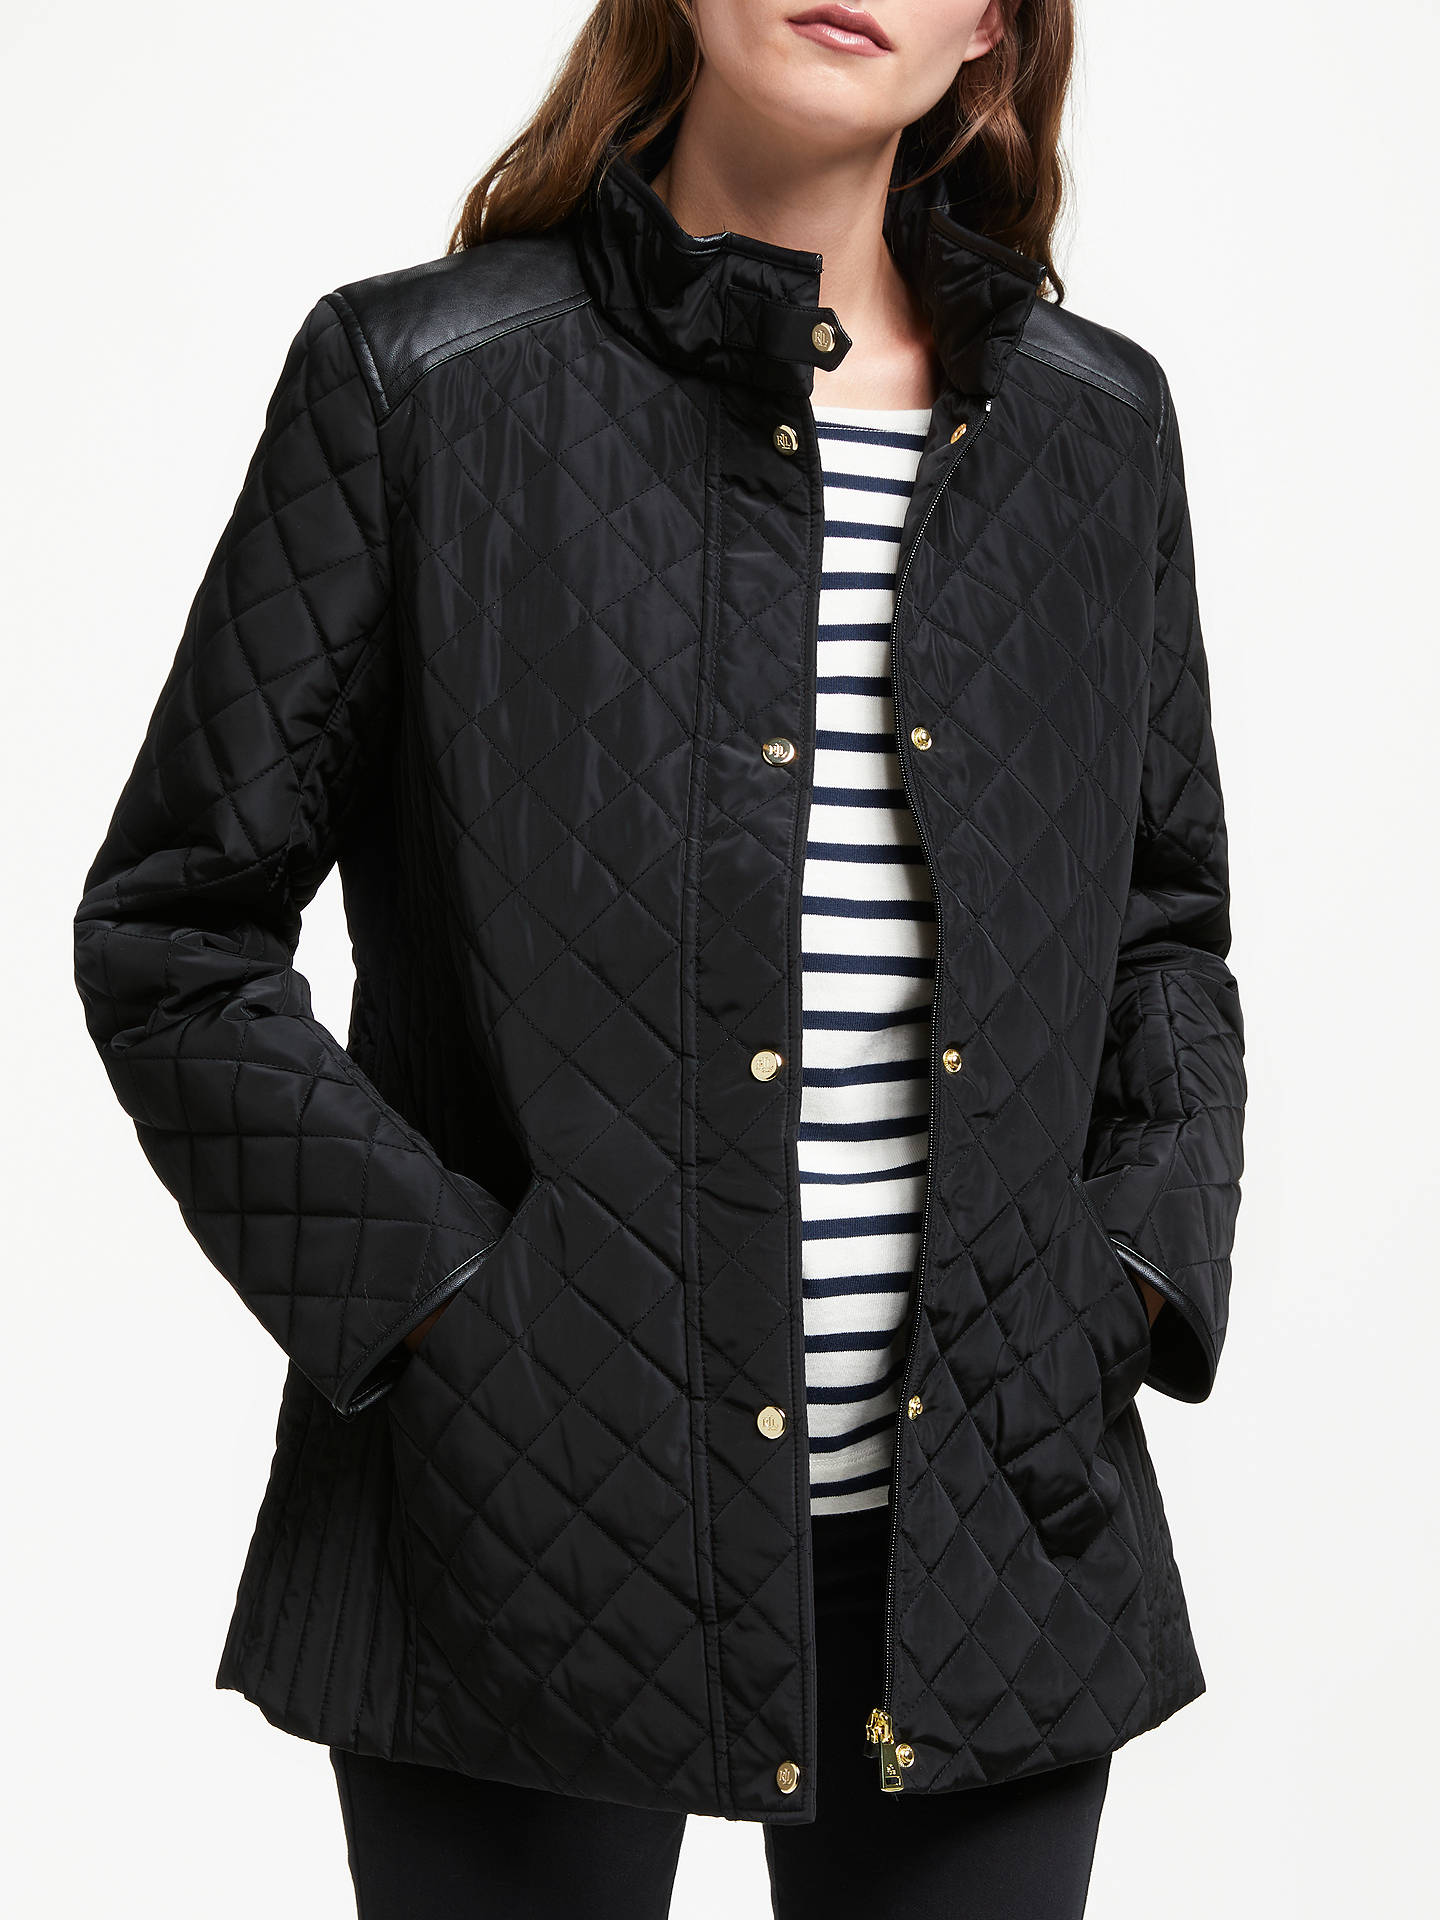 BuyLauren Ralph Lauren Yoke Quilted Coat, Black, XS Online at johnlewis.com  ... 5e86bf534aa